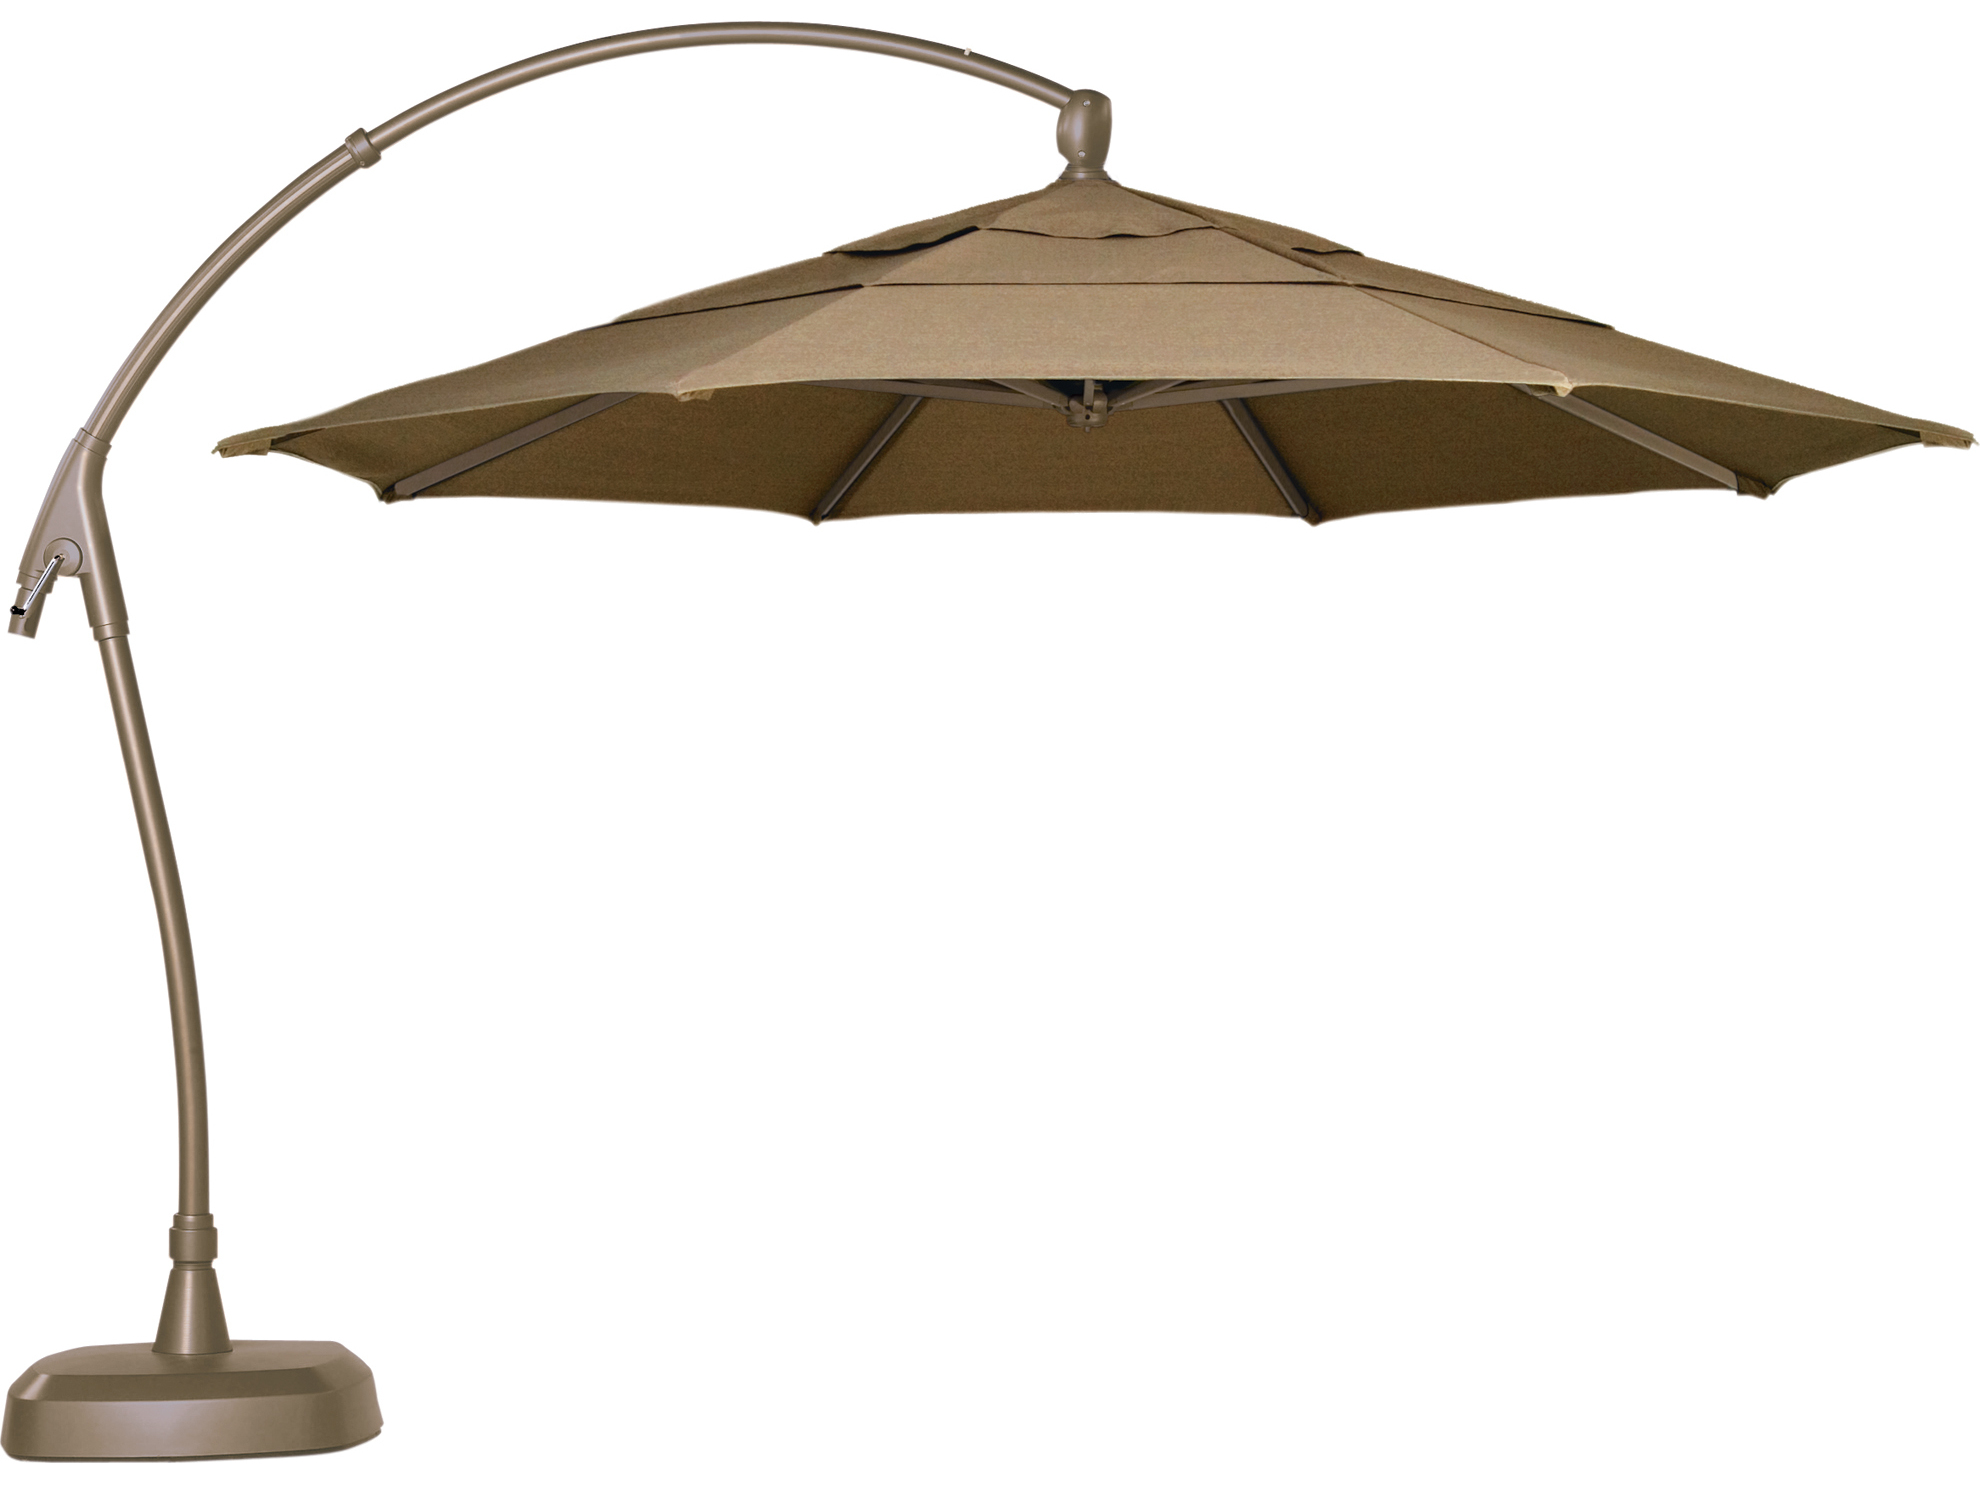 Lowes Market Umbrella | Garden Treasures Offset Umbrella | Patio Umbrella Replacement